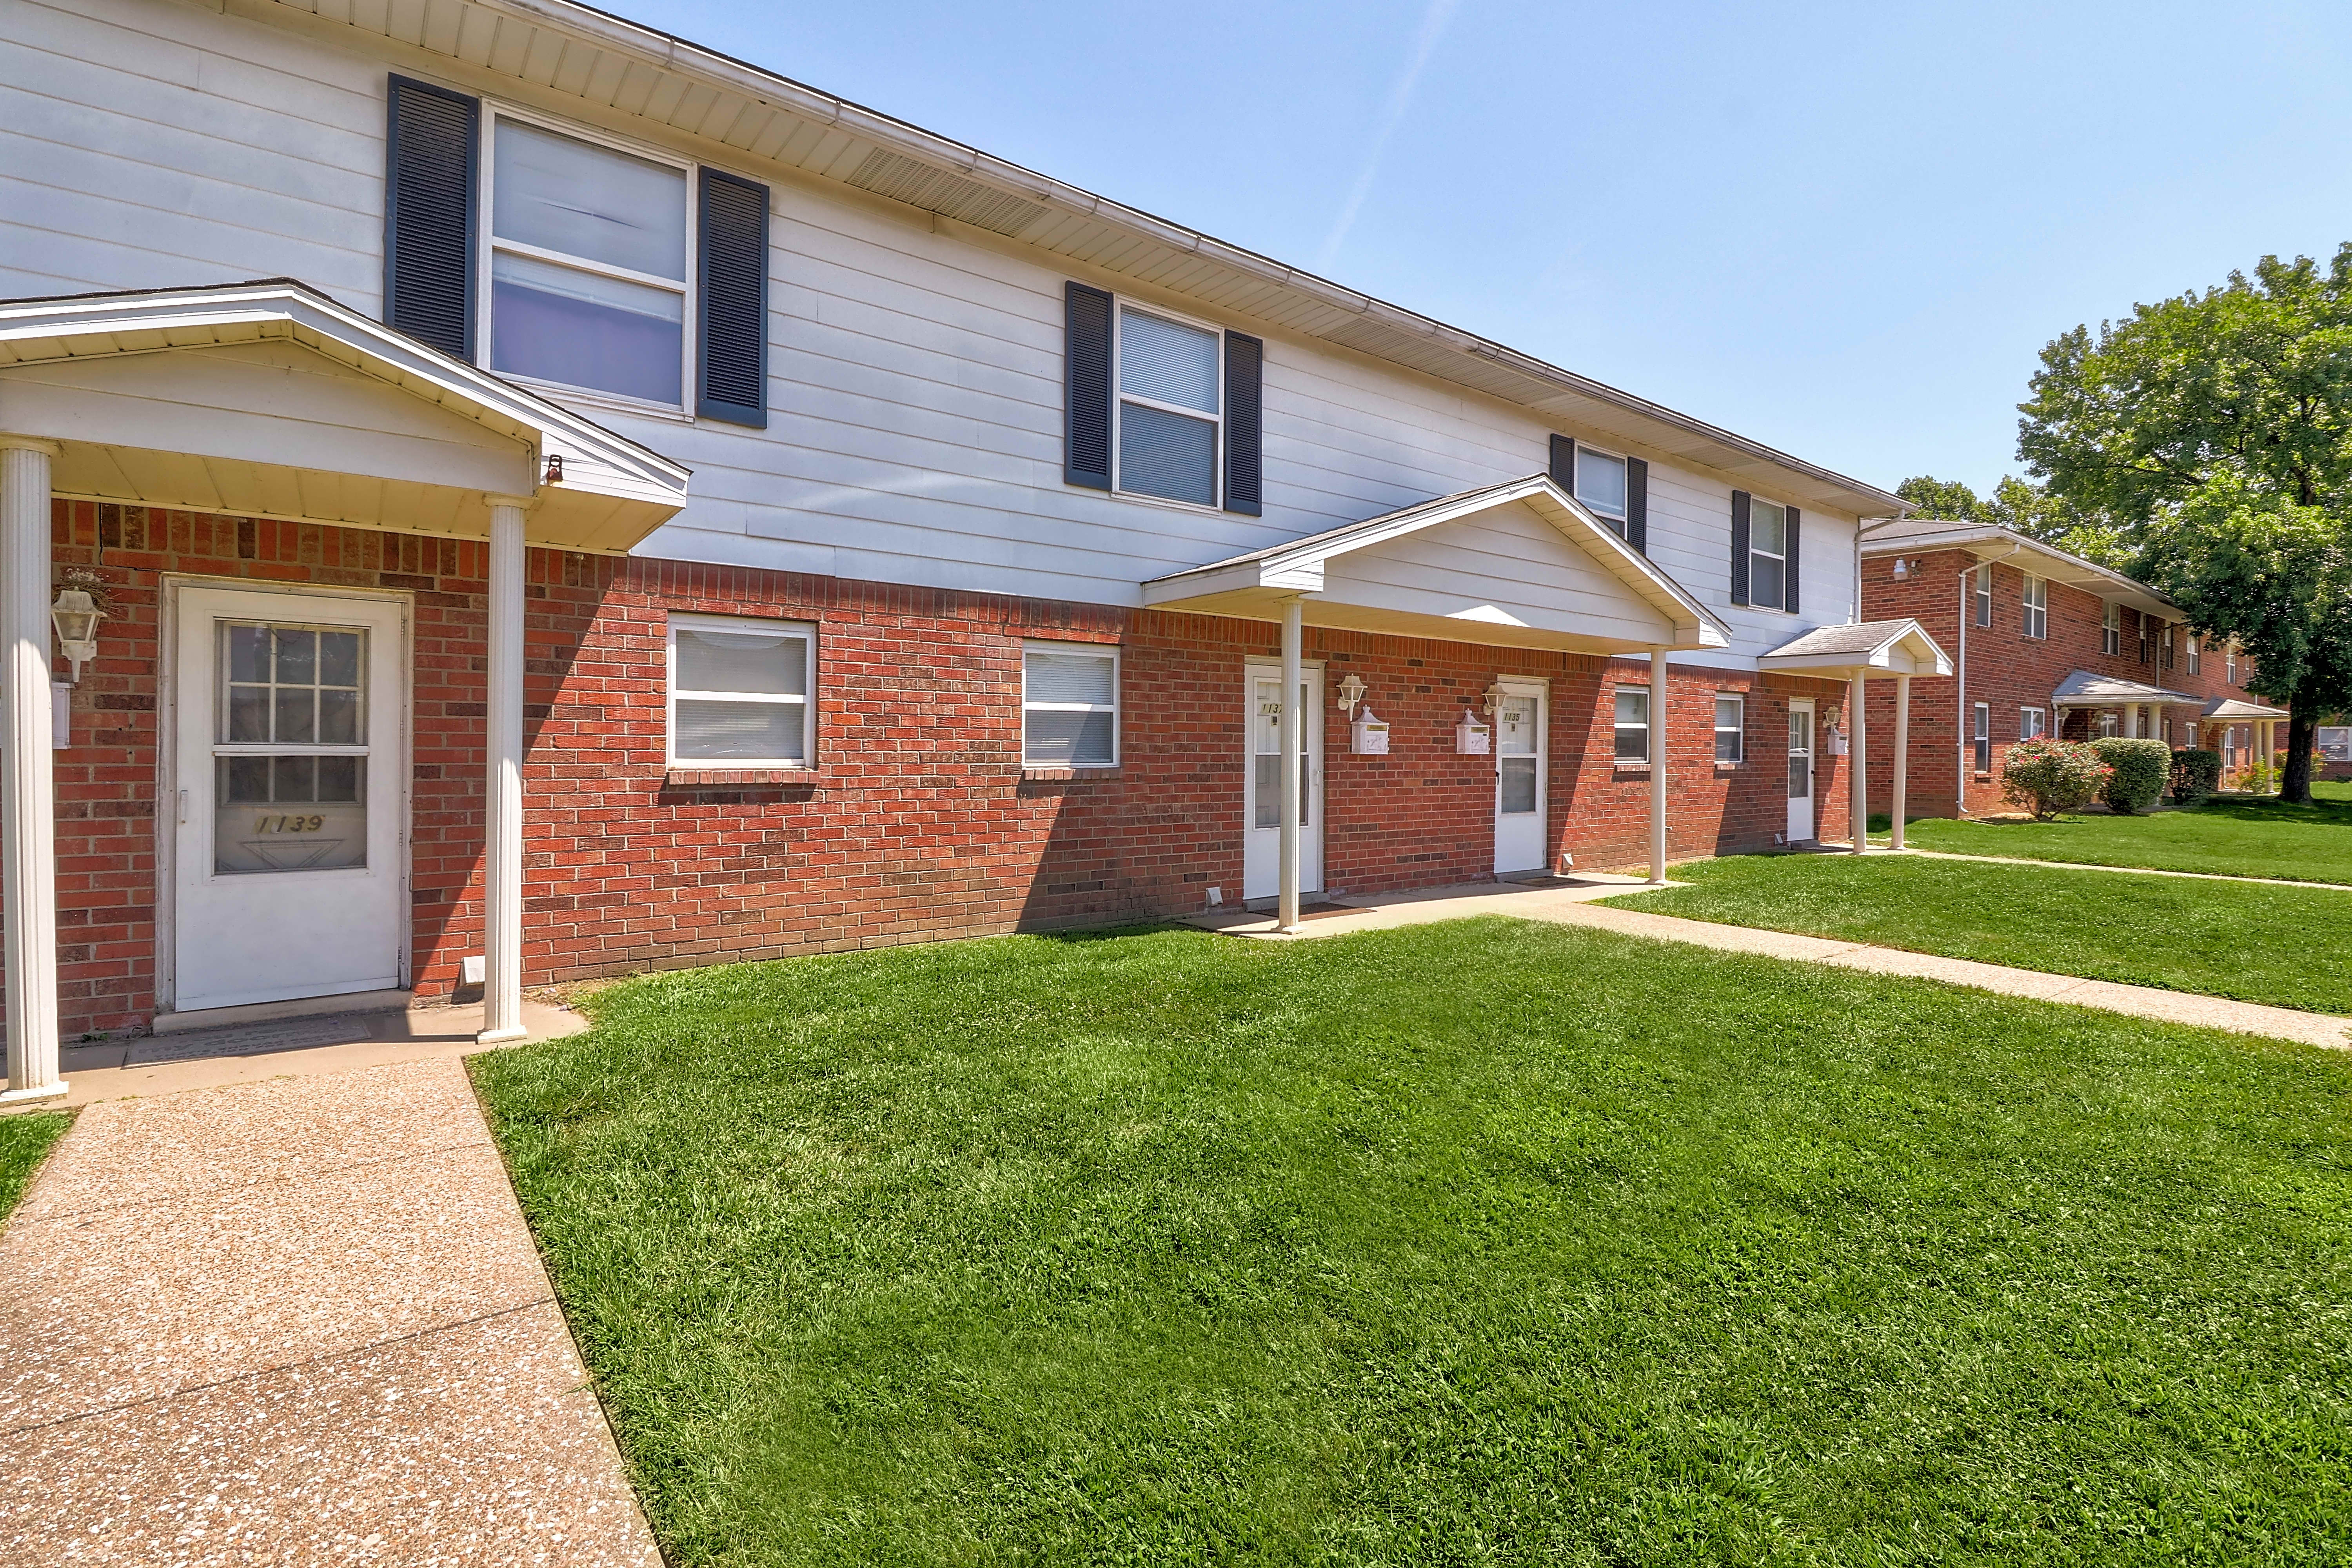 Apartments Near Ross Medical Education Center-Evansville Diamond Valley Apartment Homes for Ross Medical Education Center-Evansville Students in Evansville, IN